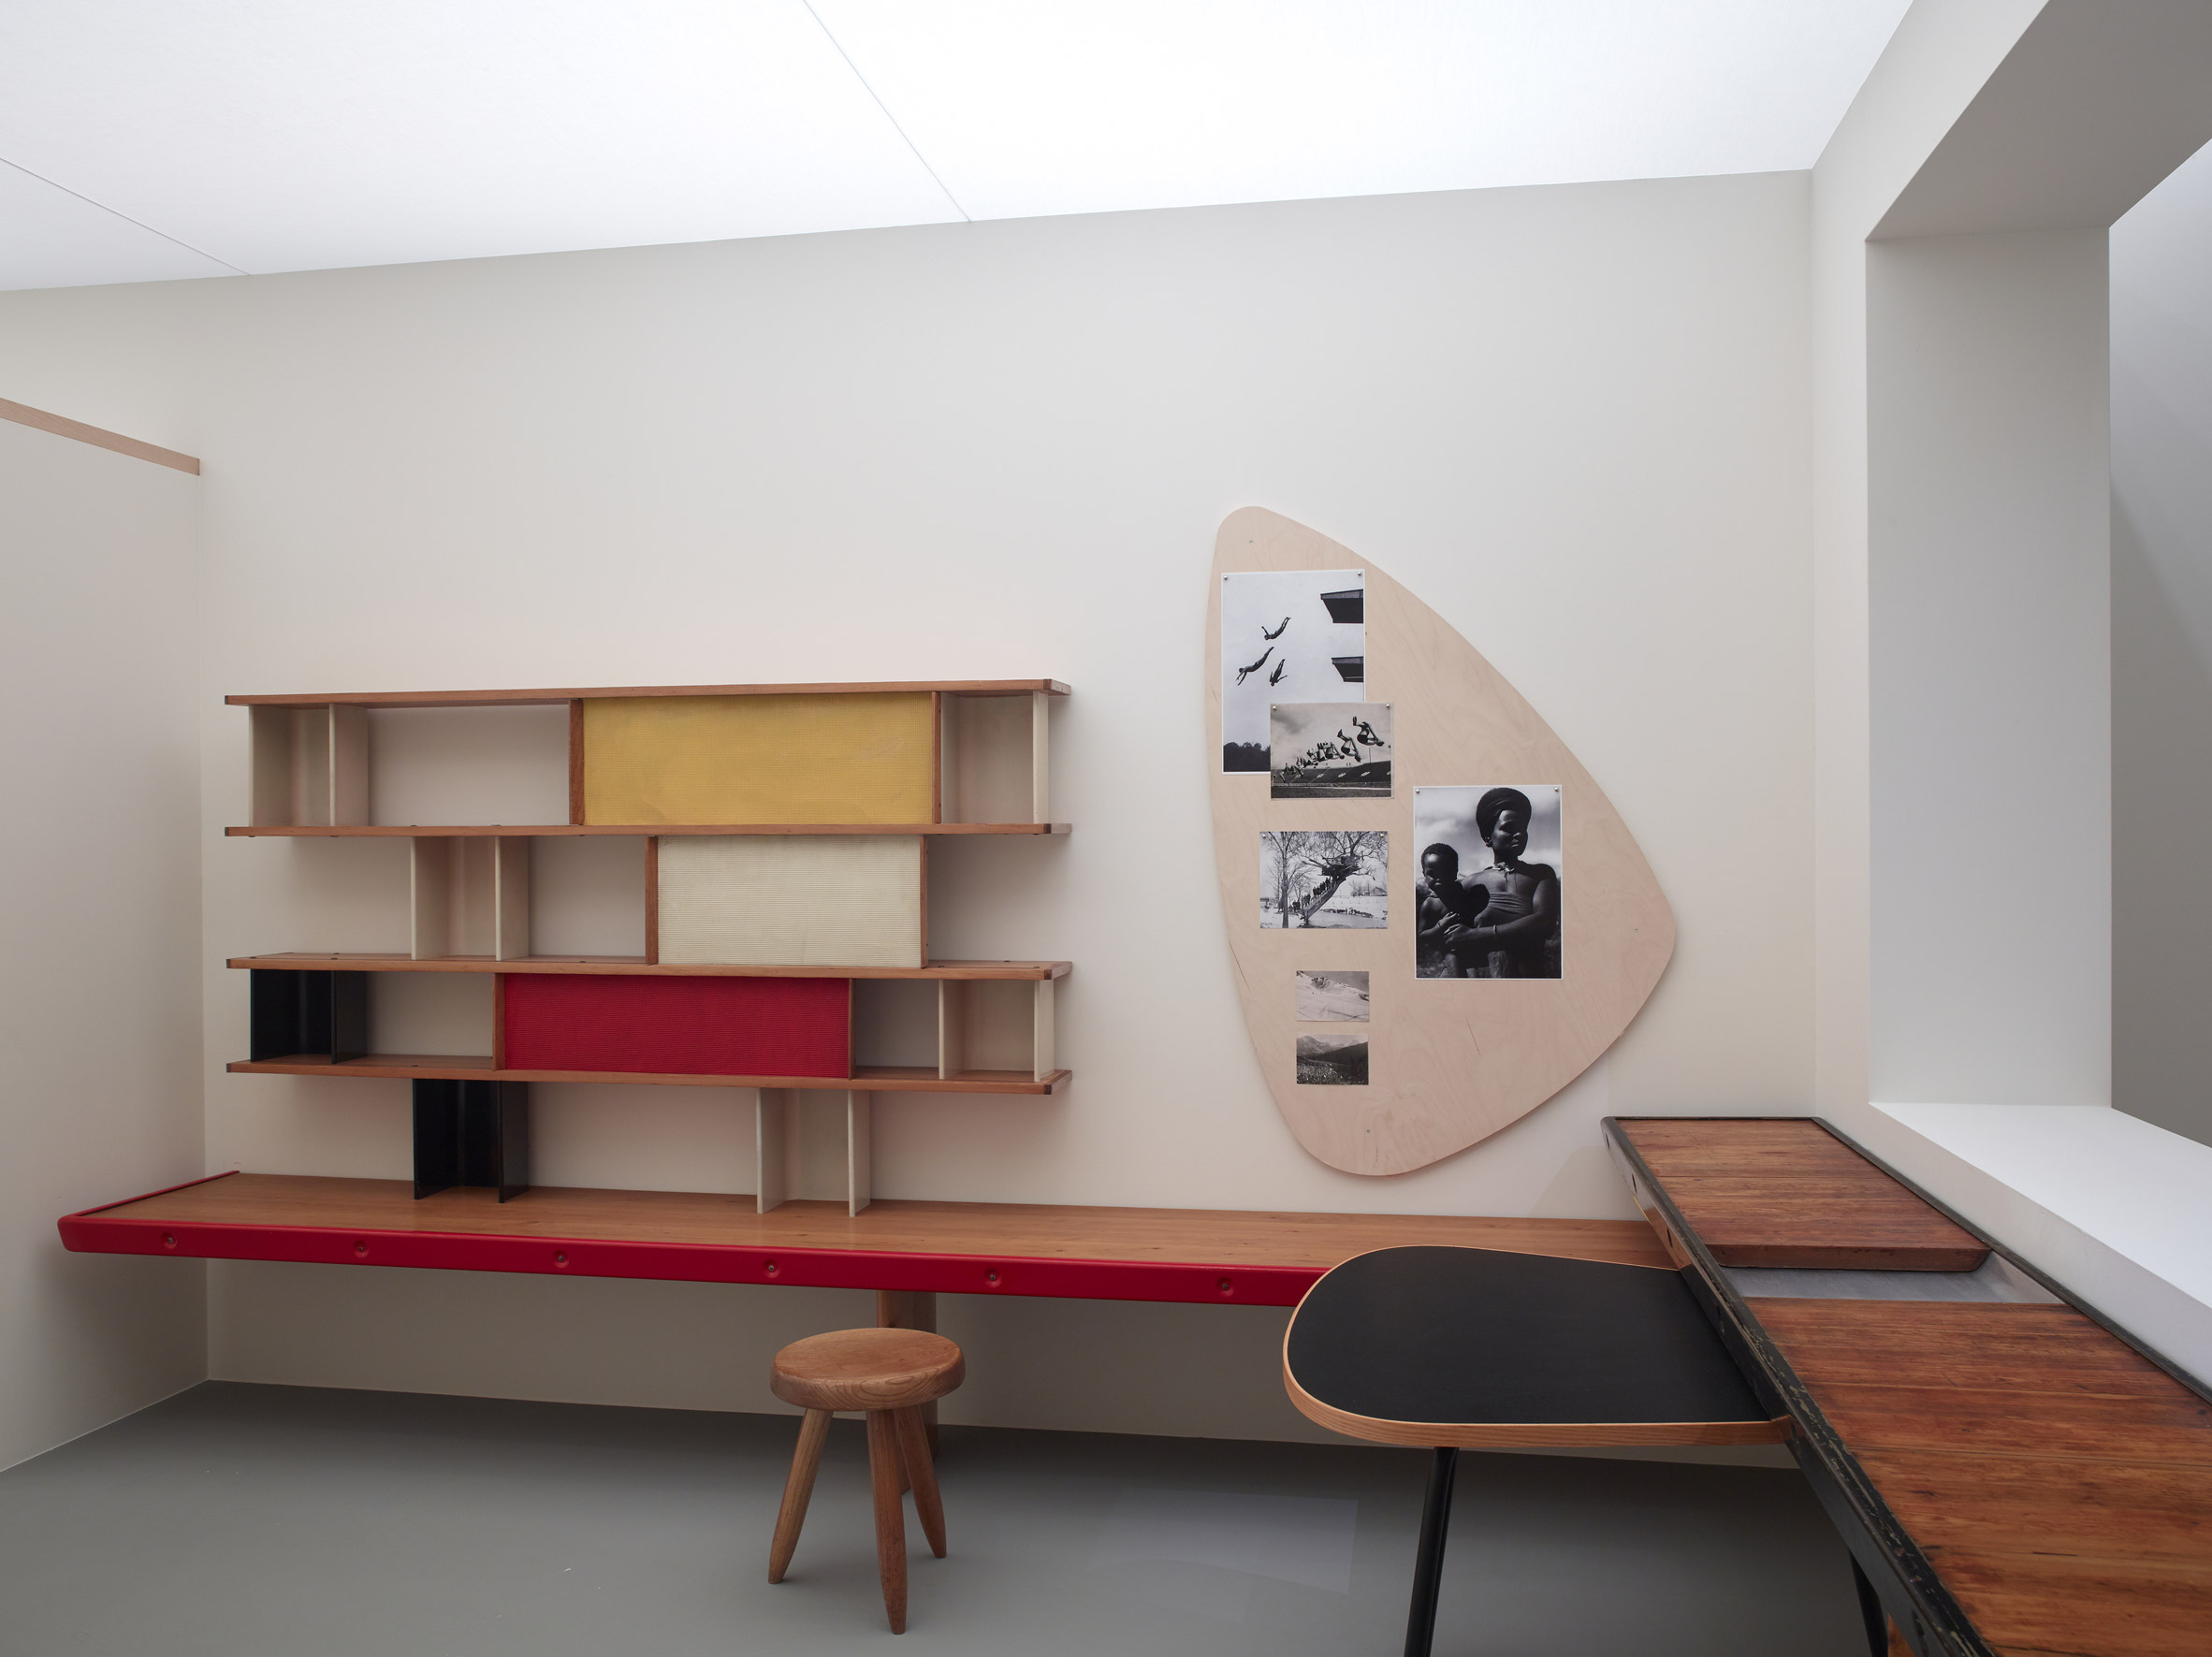 Charlotte Perriand: Inventing a New World at the Fondation Louis Vuitton